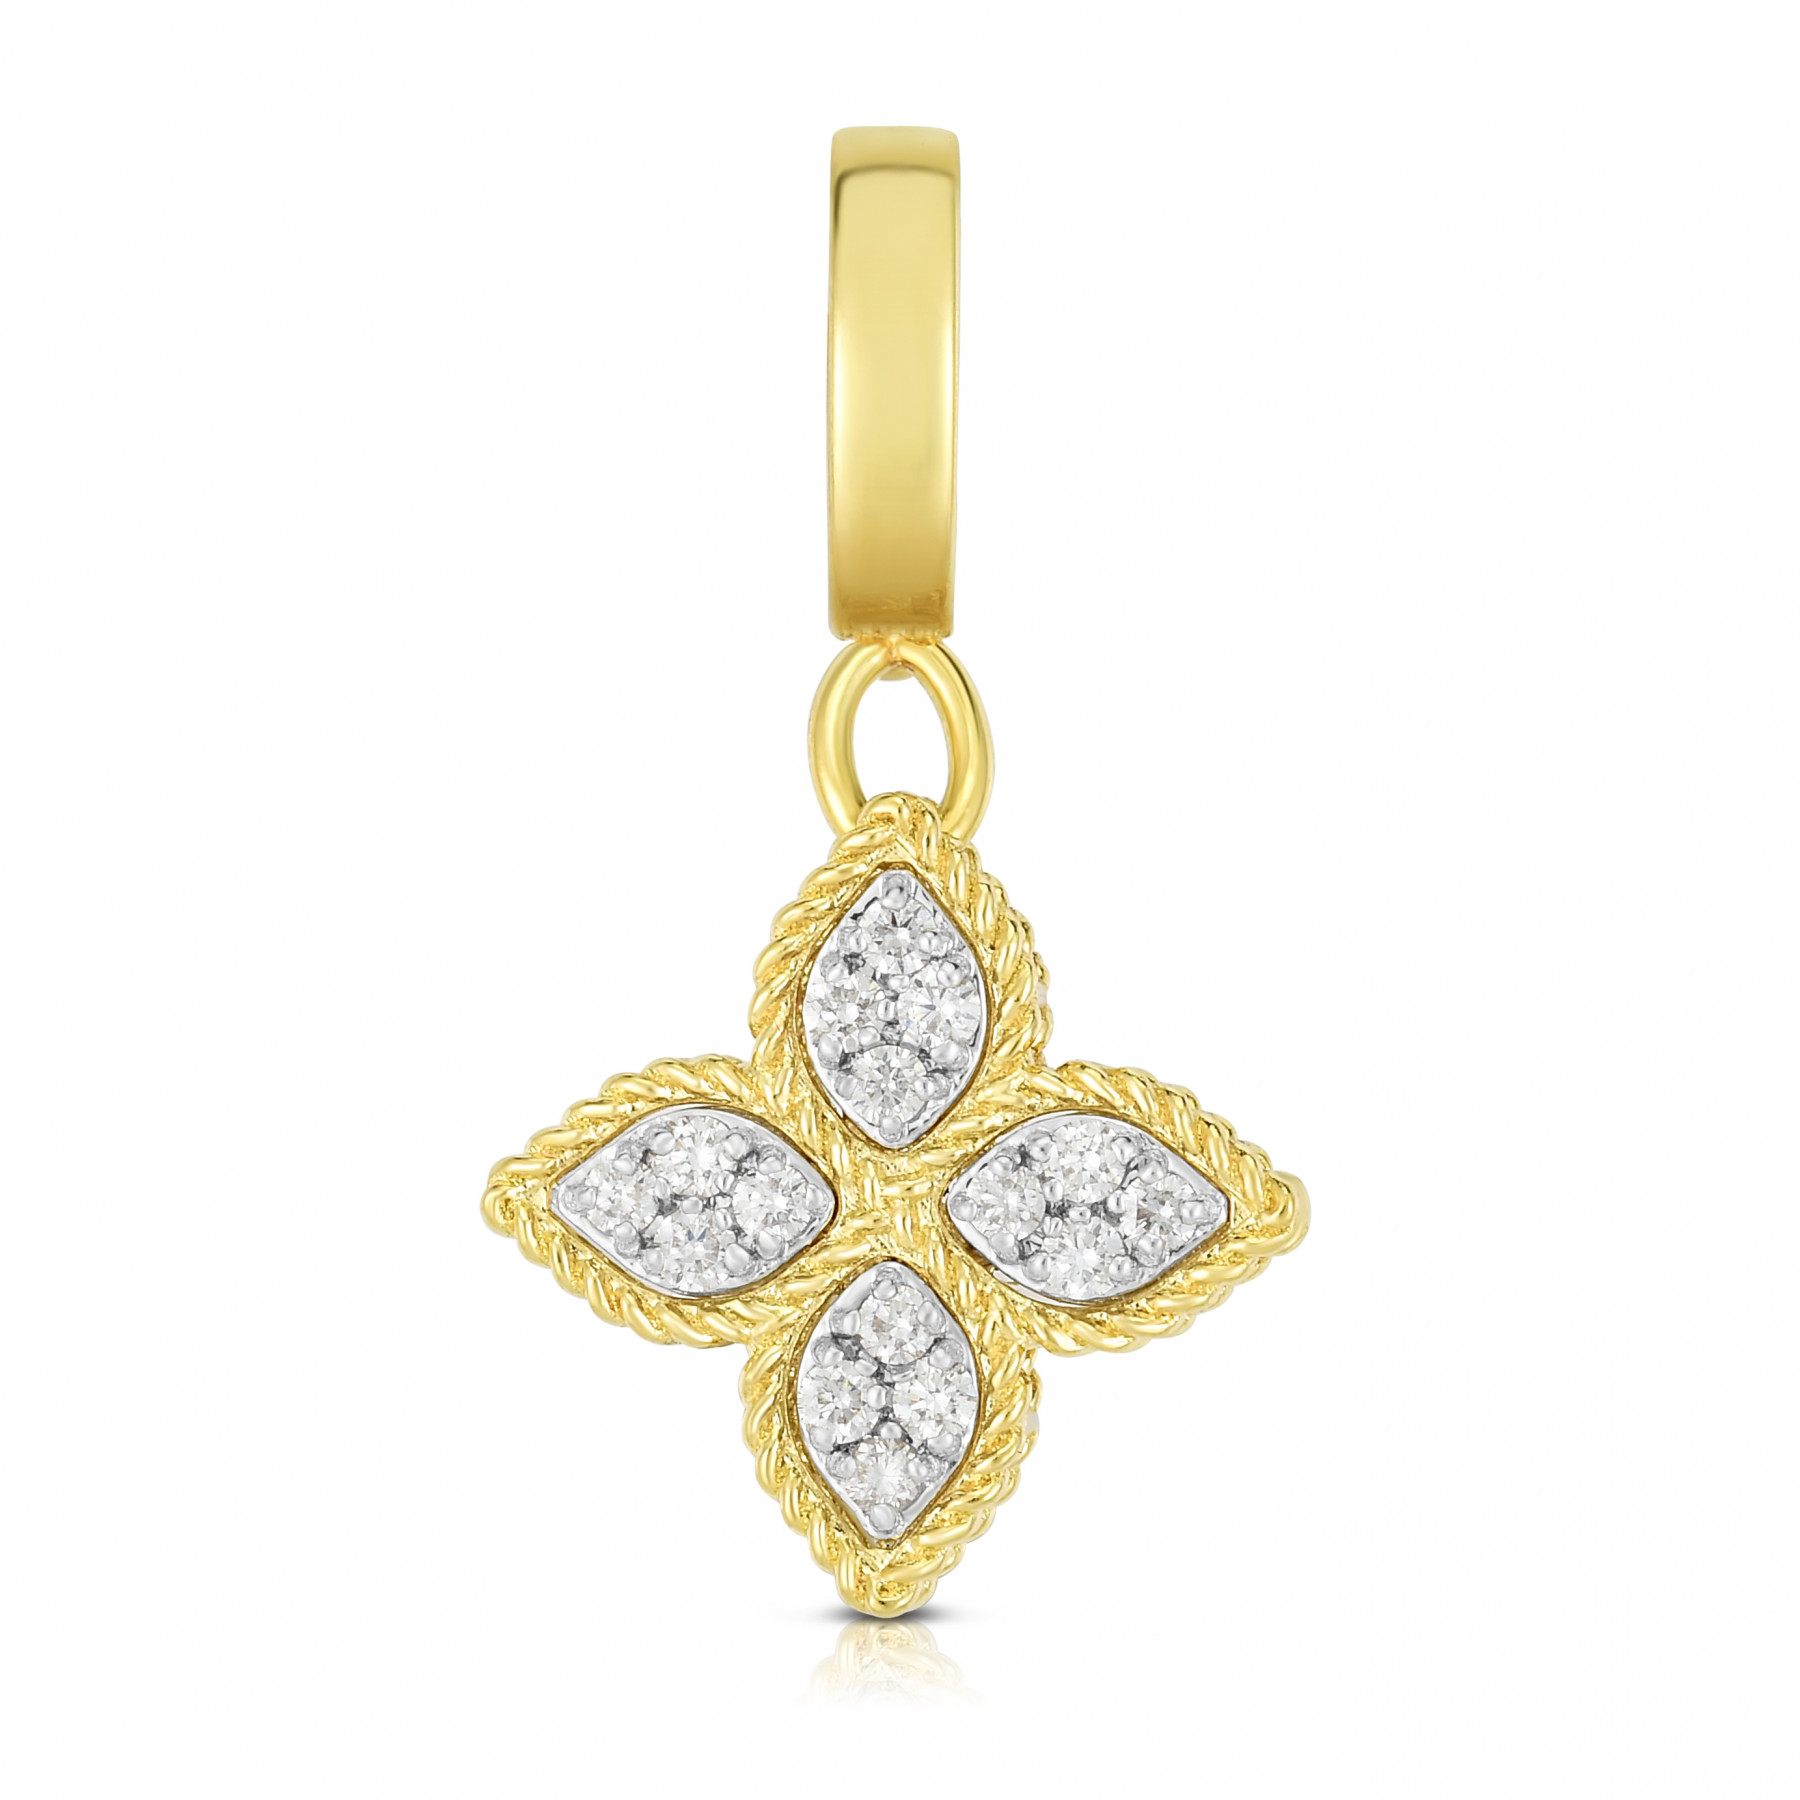 Roberto Coin Diamond Flower Charm in Yellow Gold